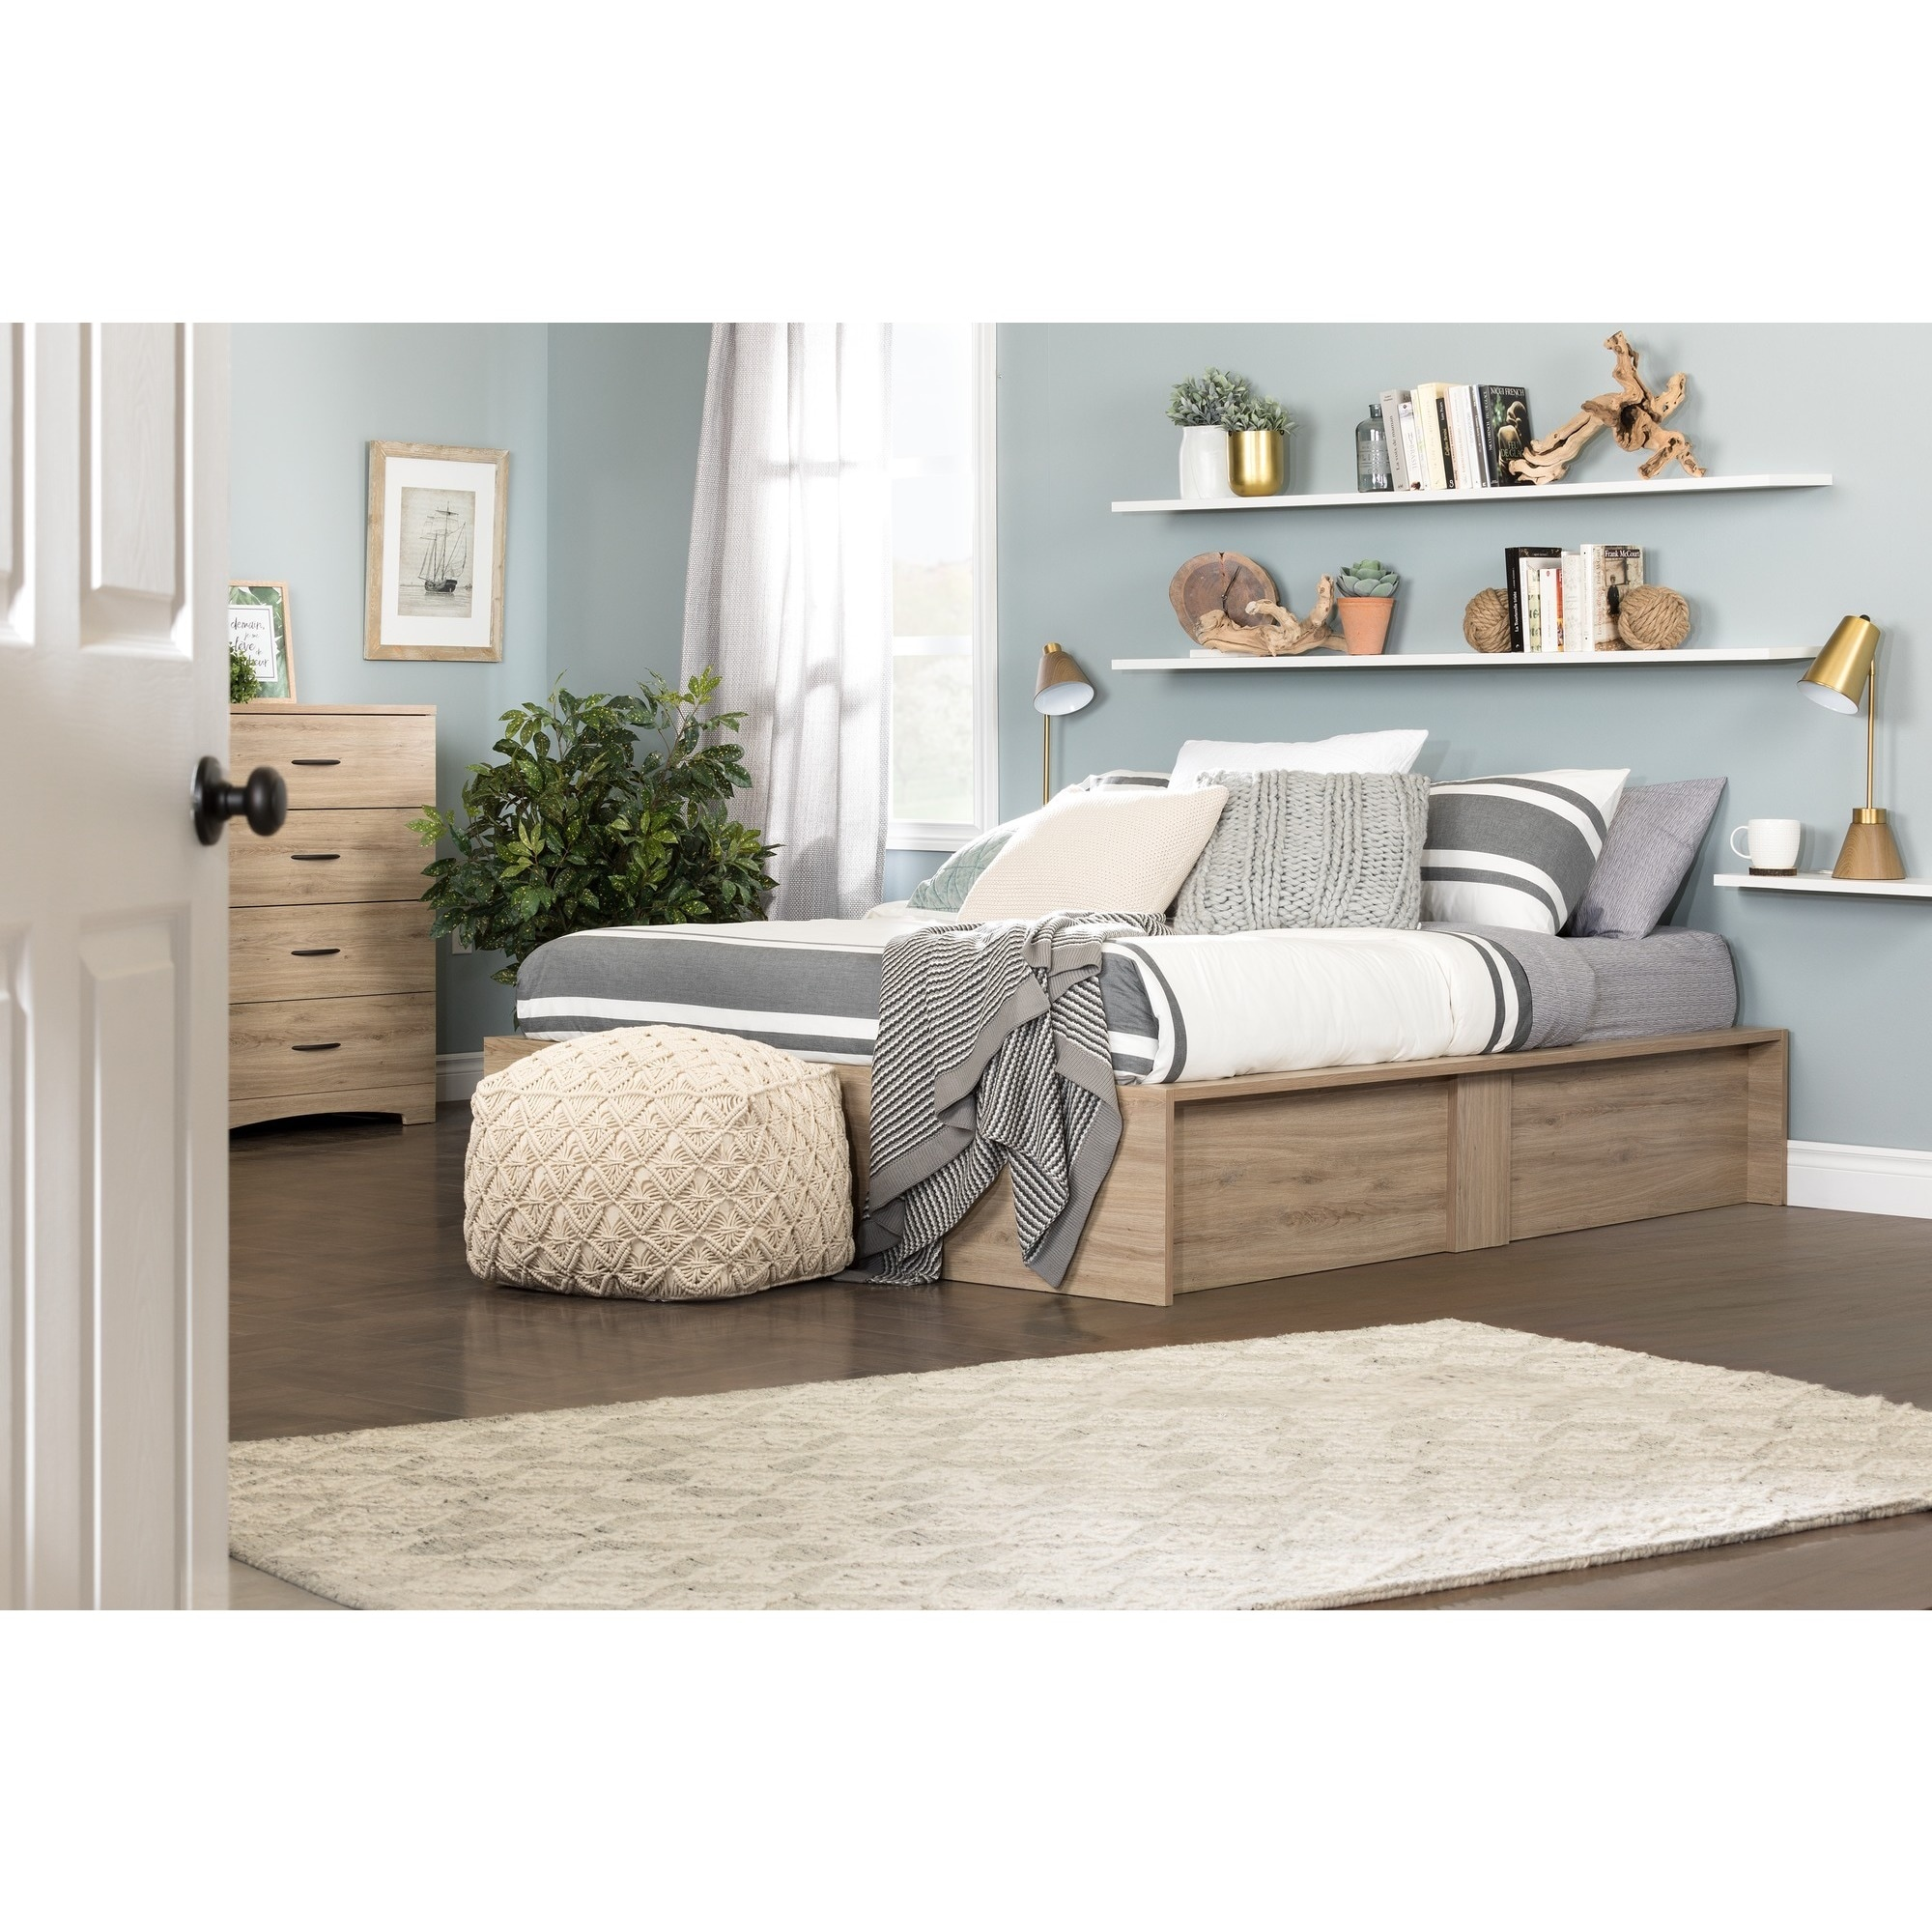 South Shore Step e Ottoman Queen Storage Bed Free Shipping Today